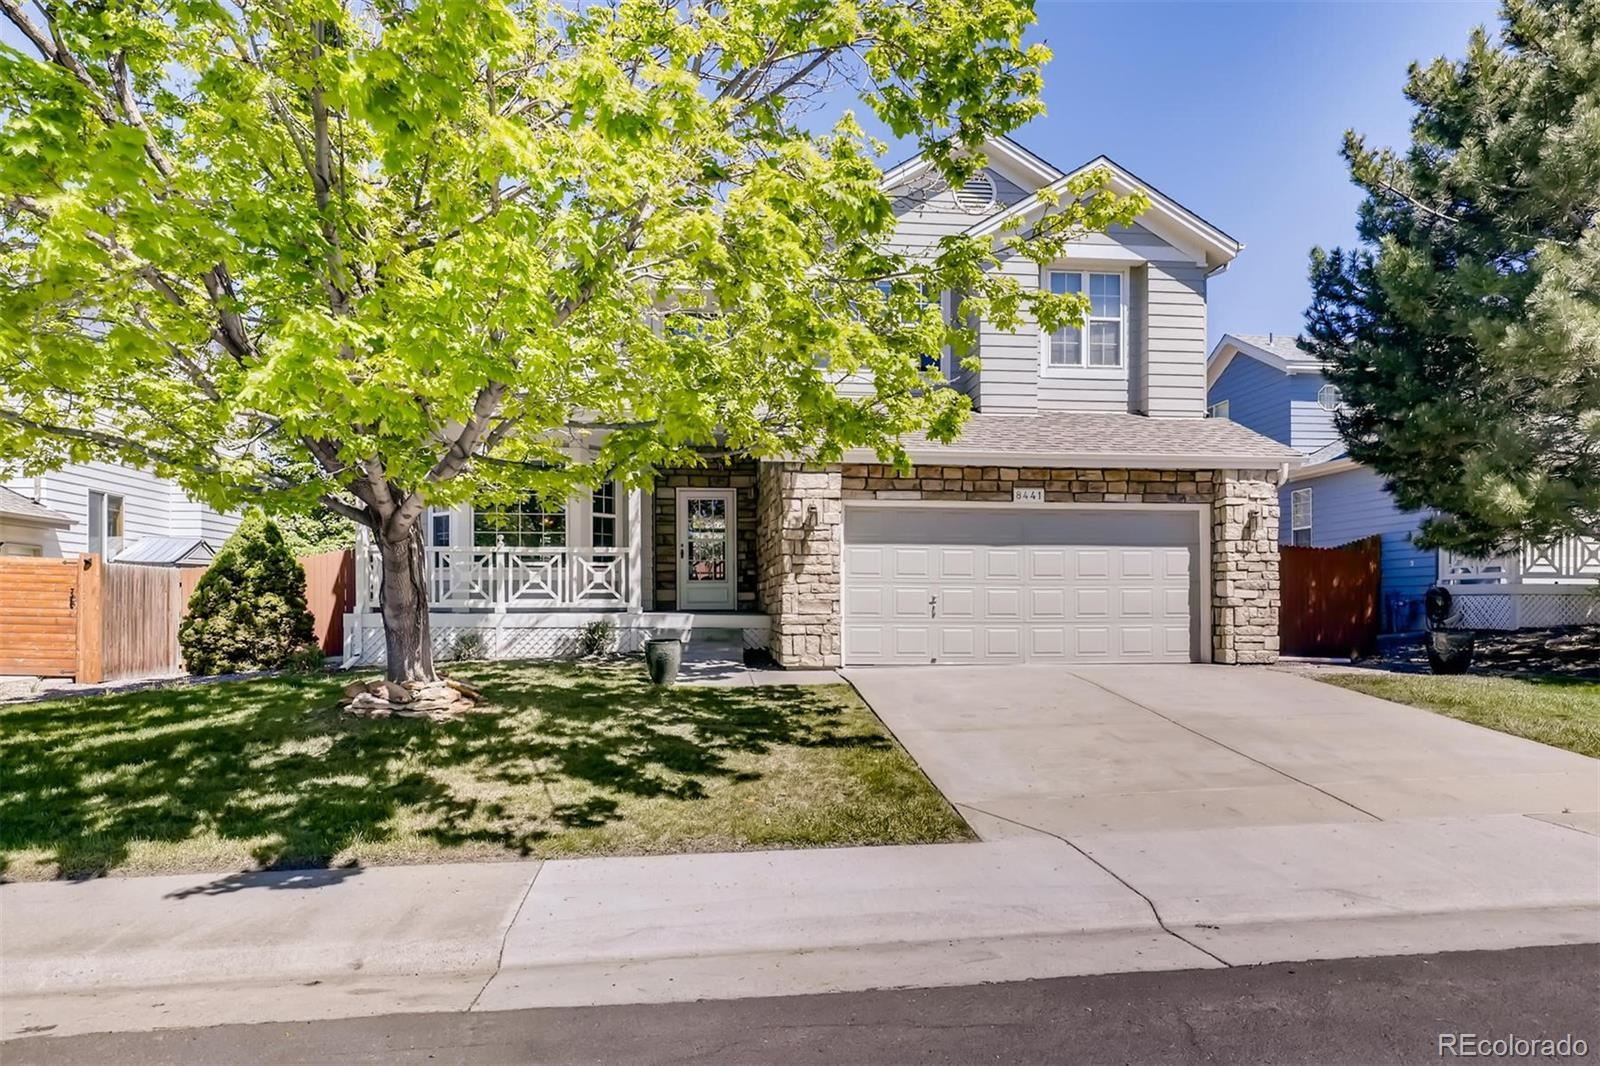 8441 W 95th Drive, Westminster, CO 80021 - #: 3331588